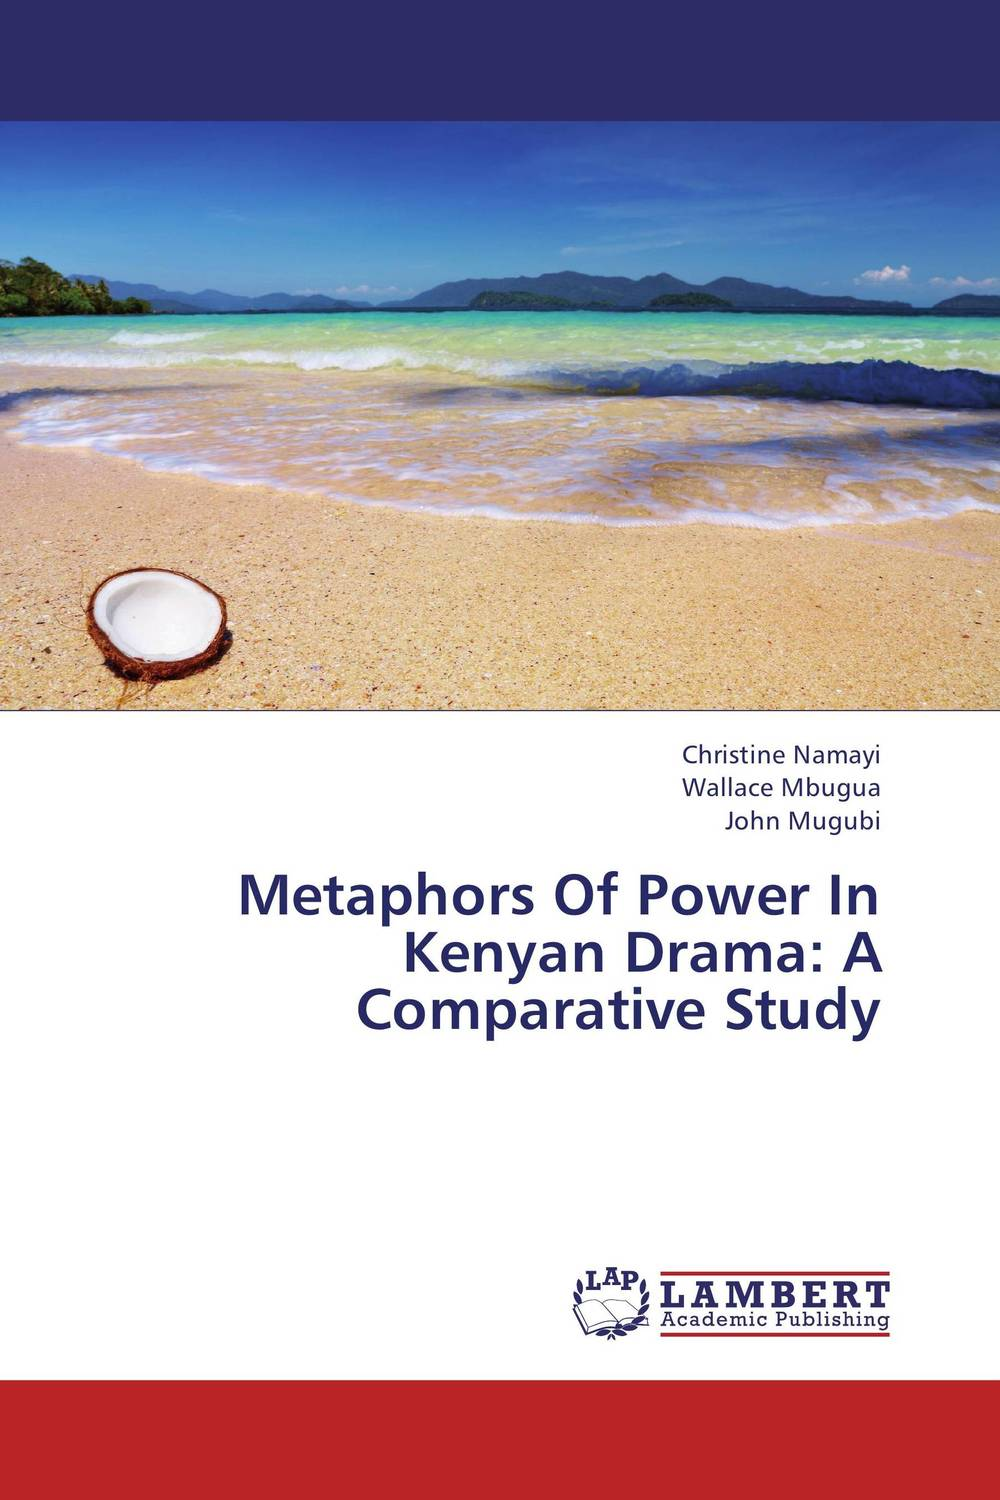 Metaphors Of Power In Kenyan Drama: A Comparative Study